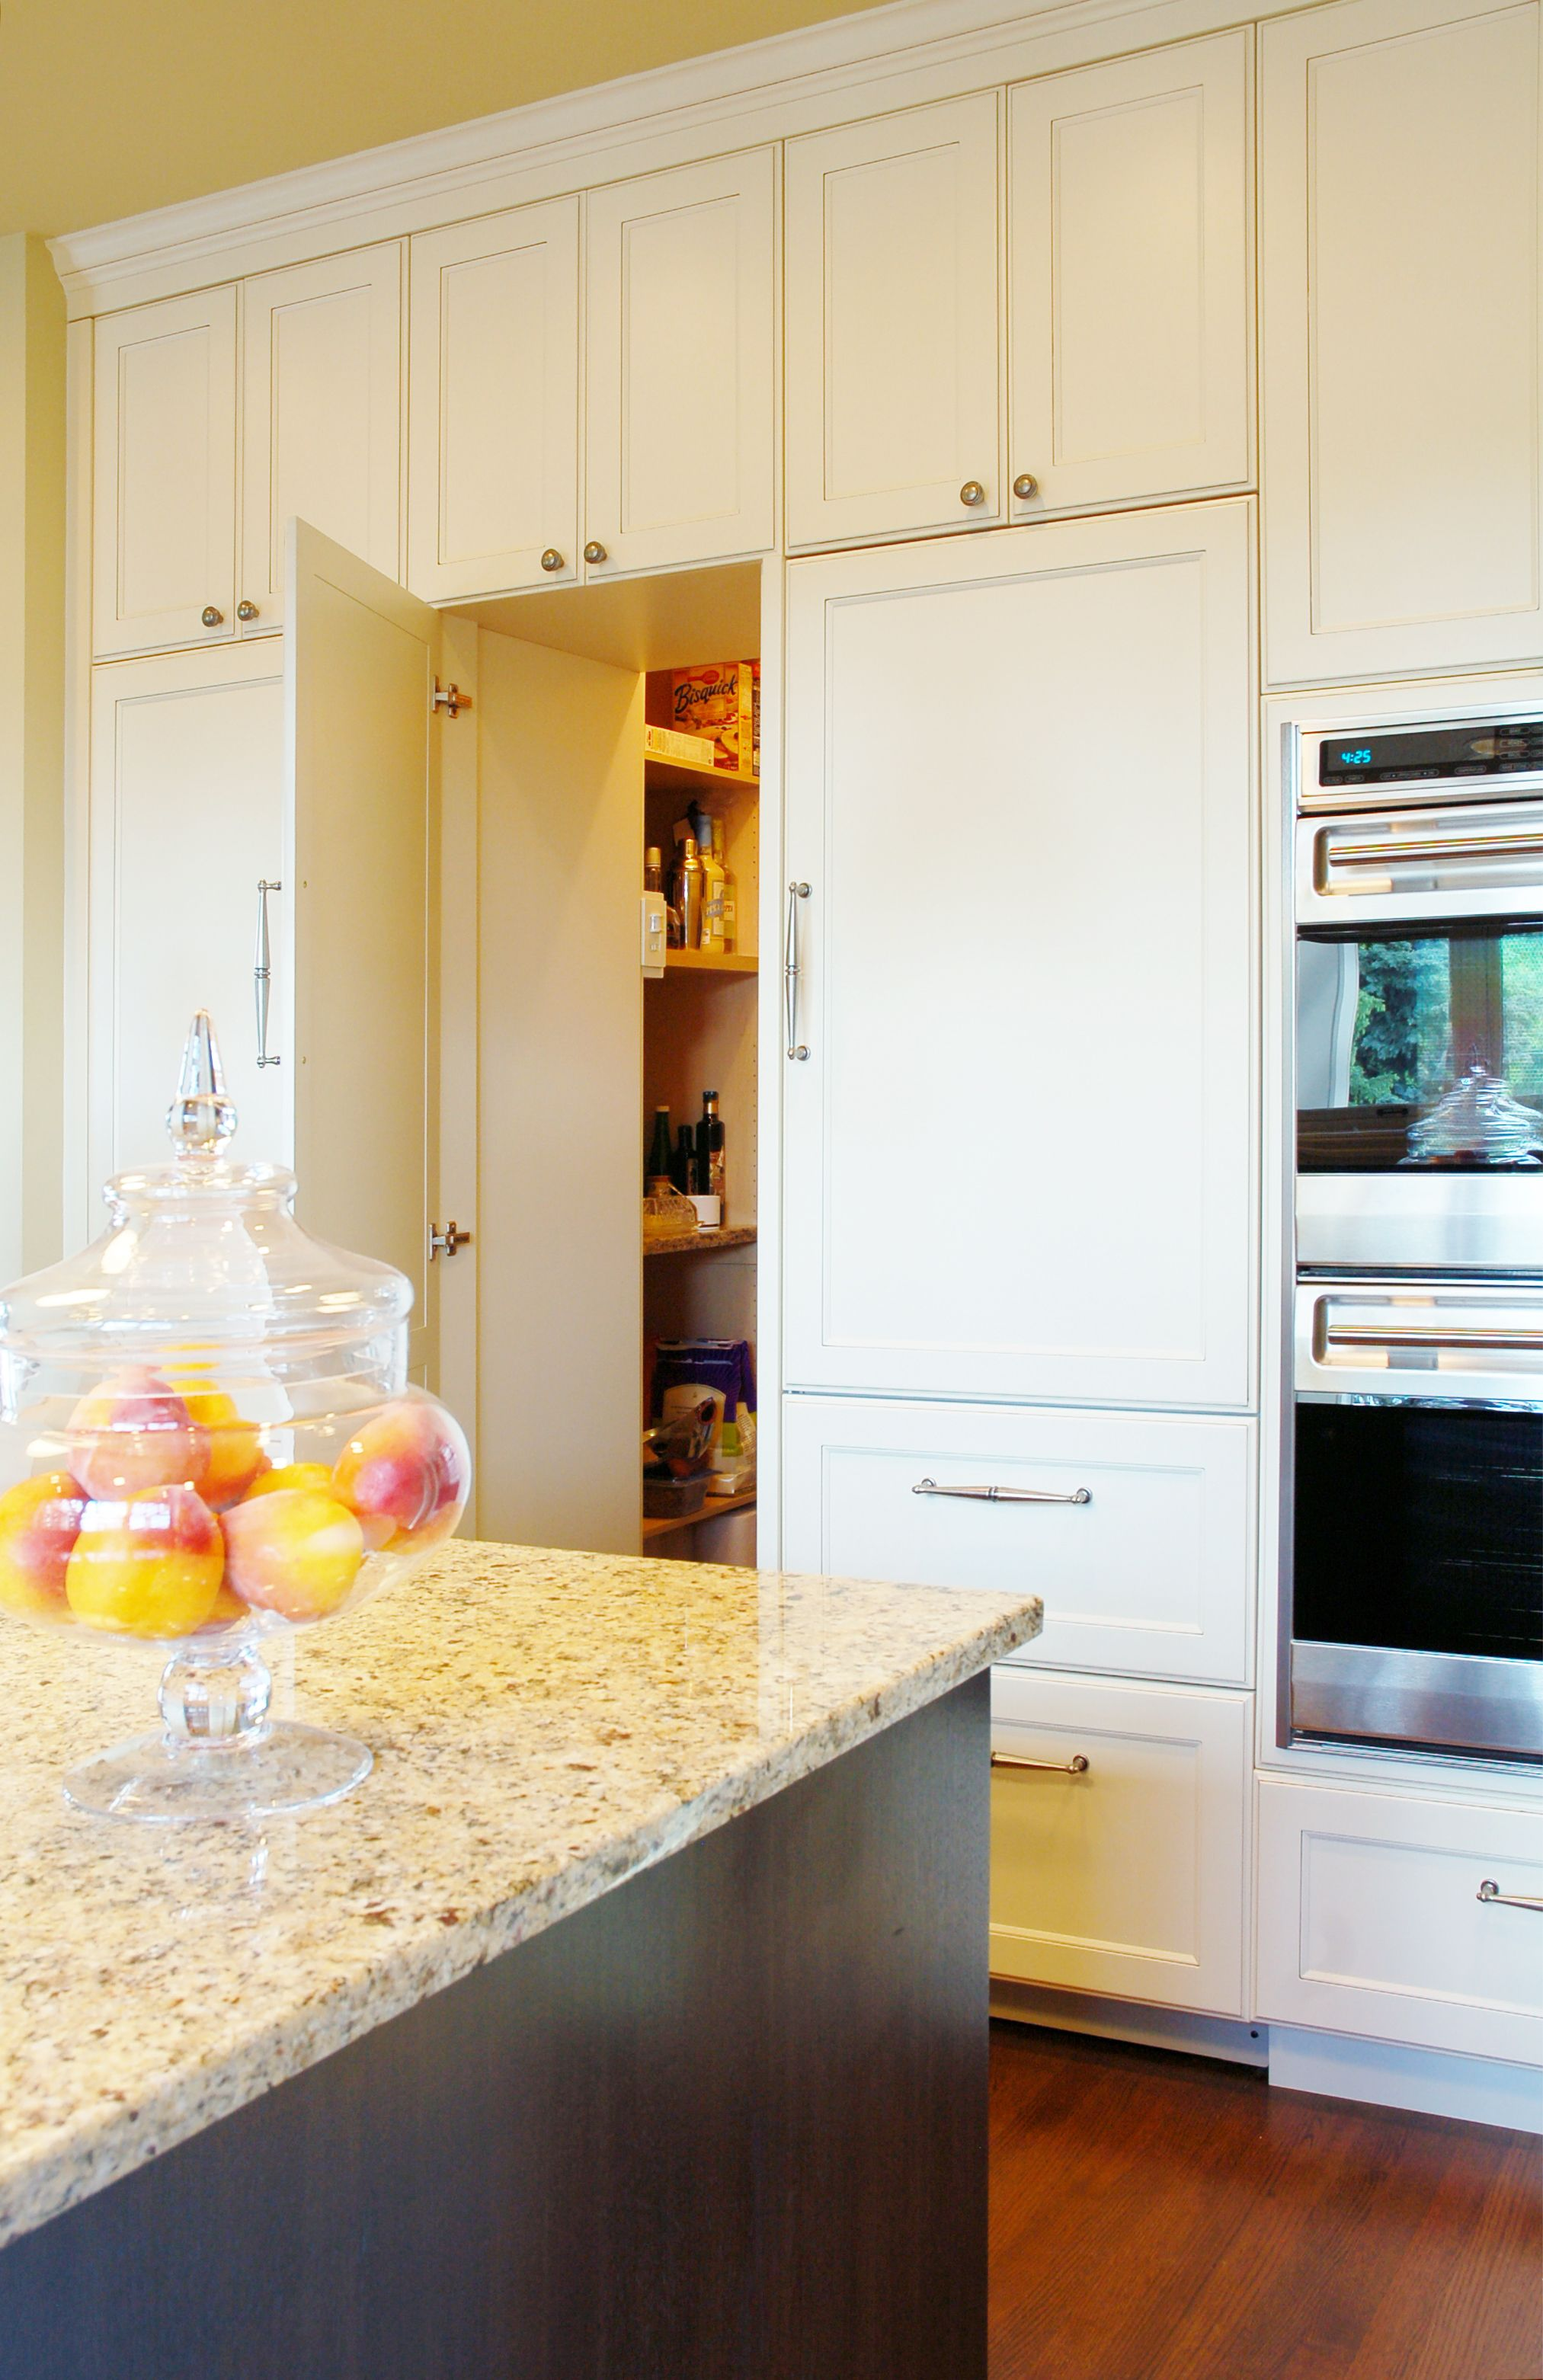 disguised pantry Brilliant Decorating tips idea Pinterest